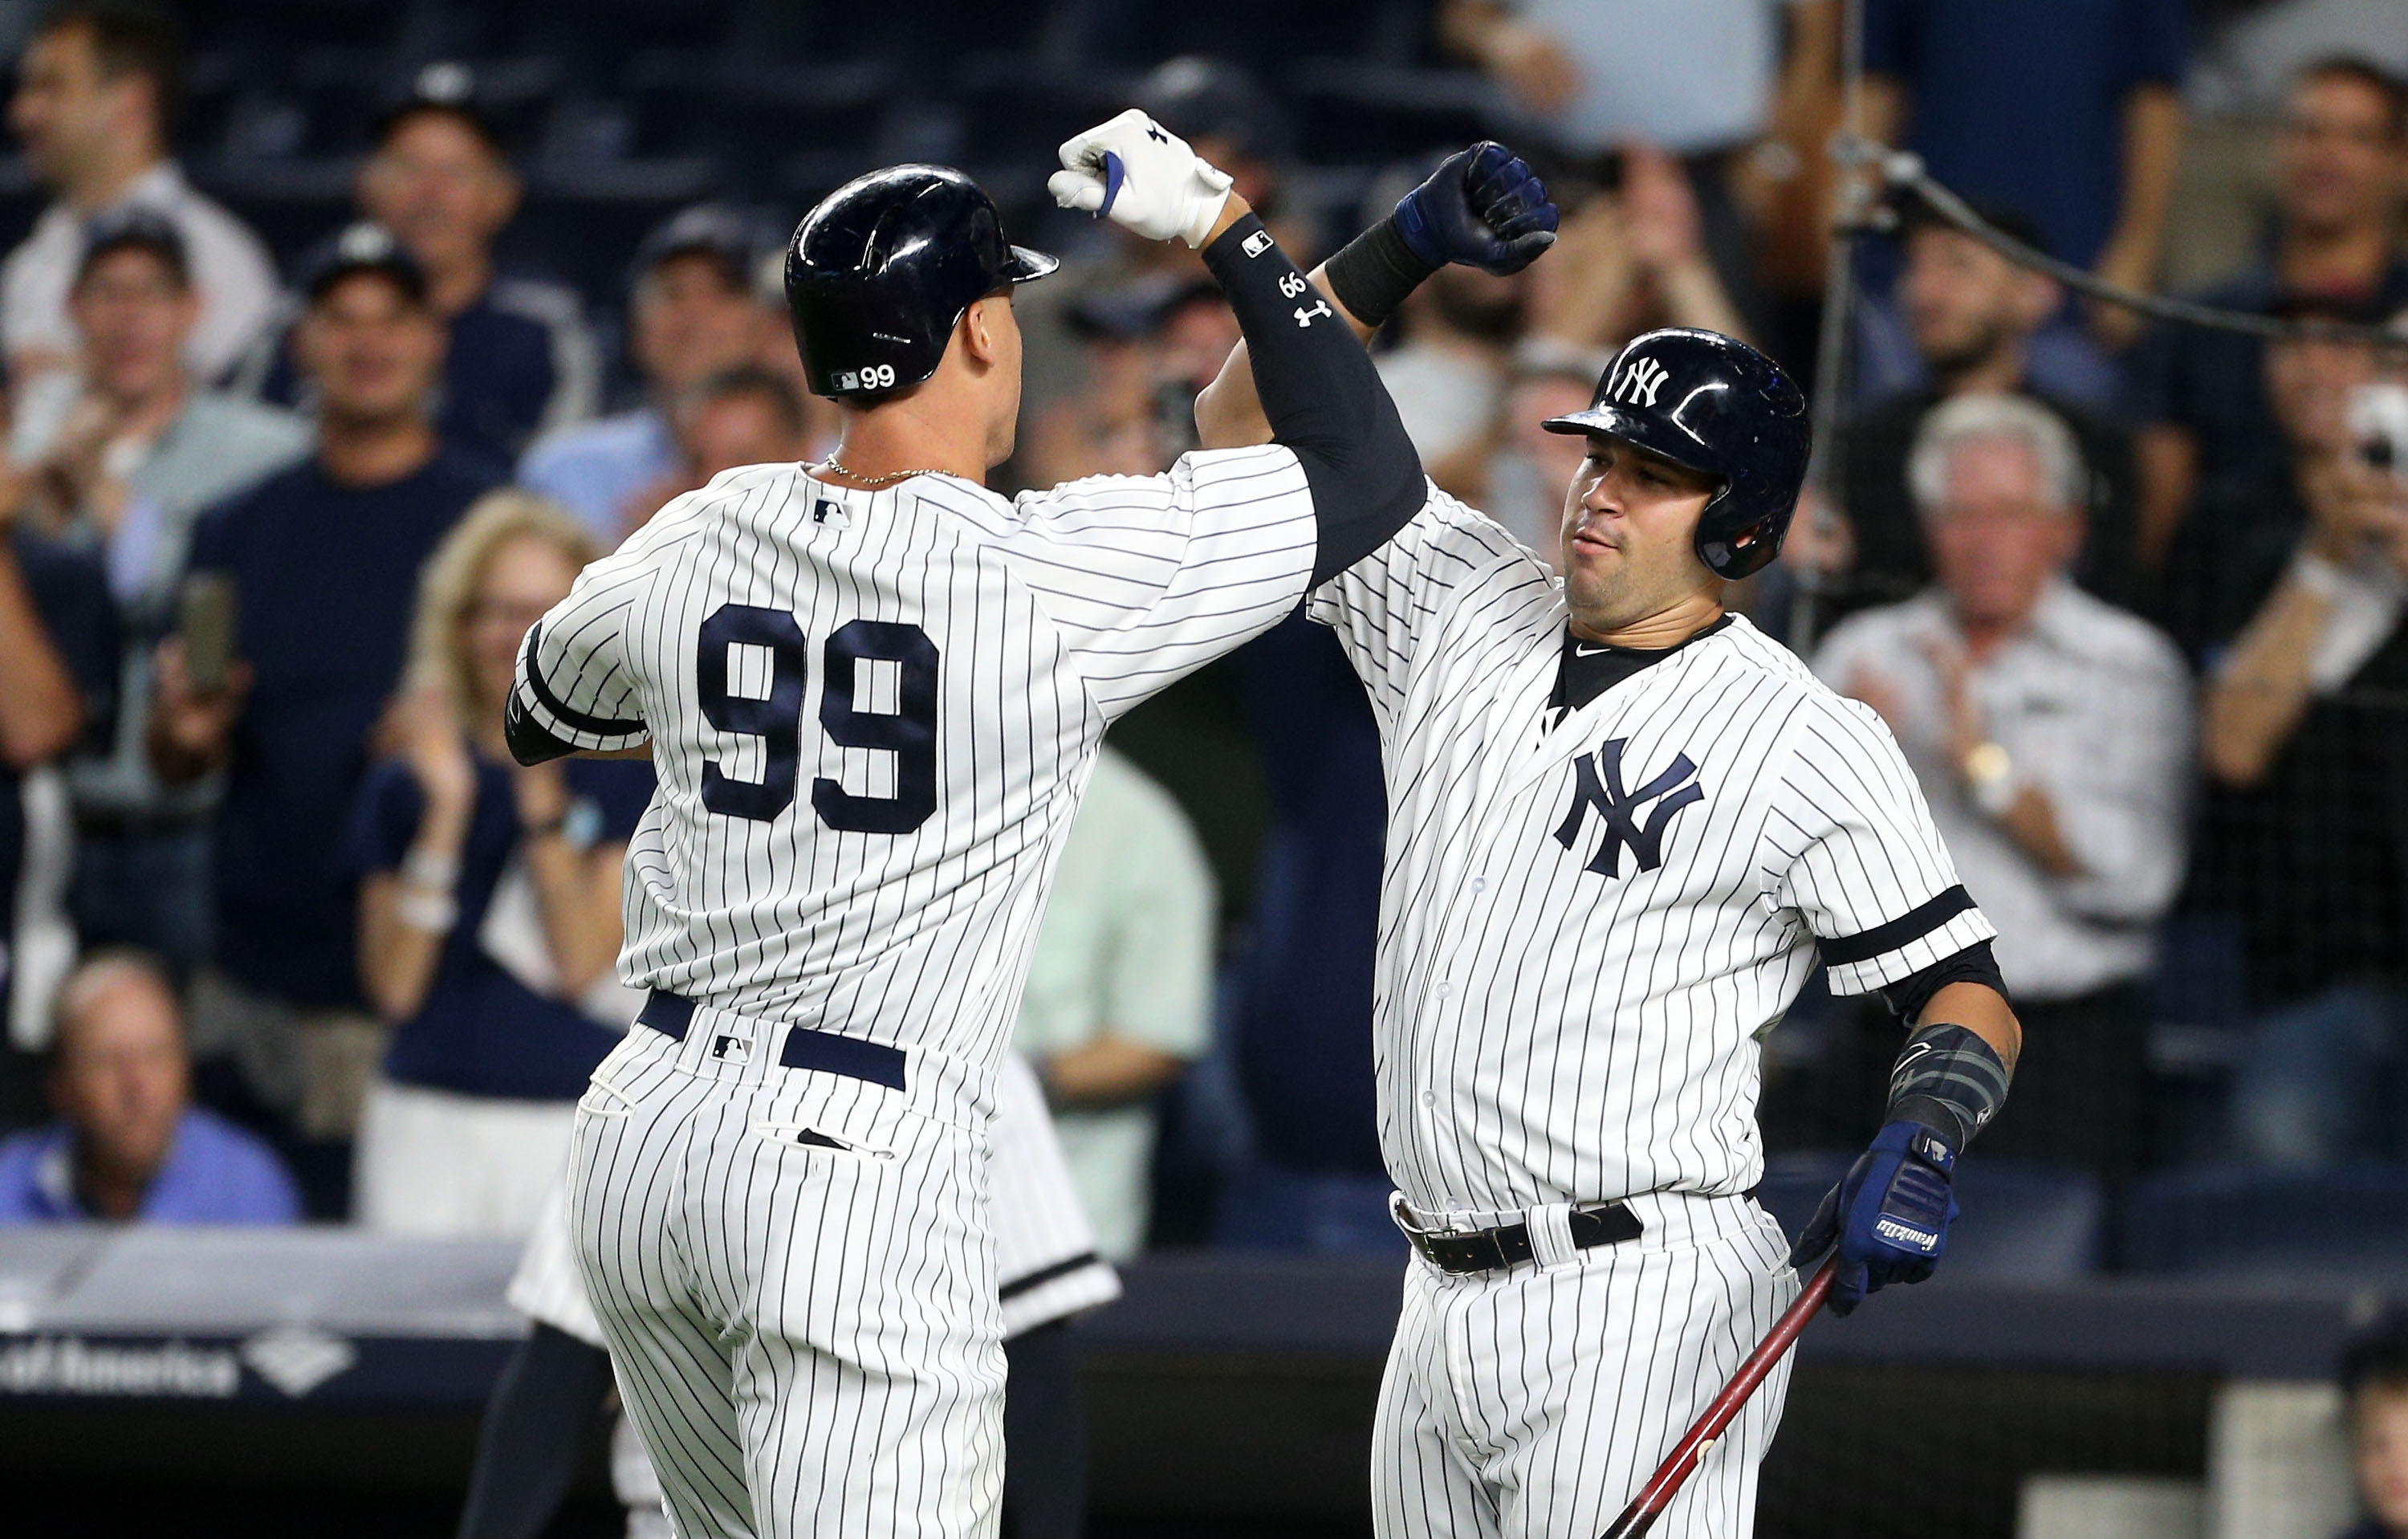 Aaron Judge (left) and Gary Sanchez celebrate Judge's homer Monday night. (Getty Images)